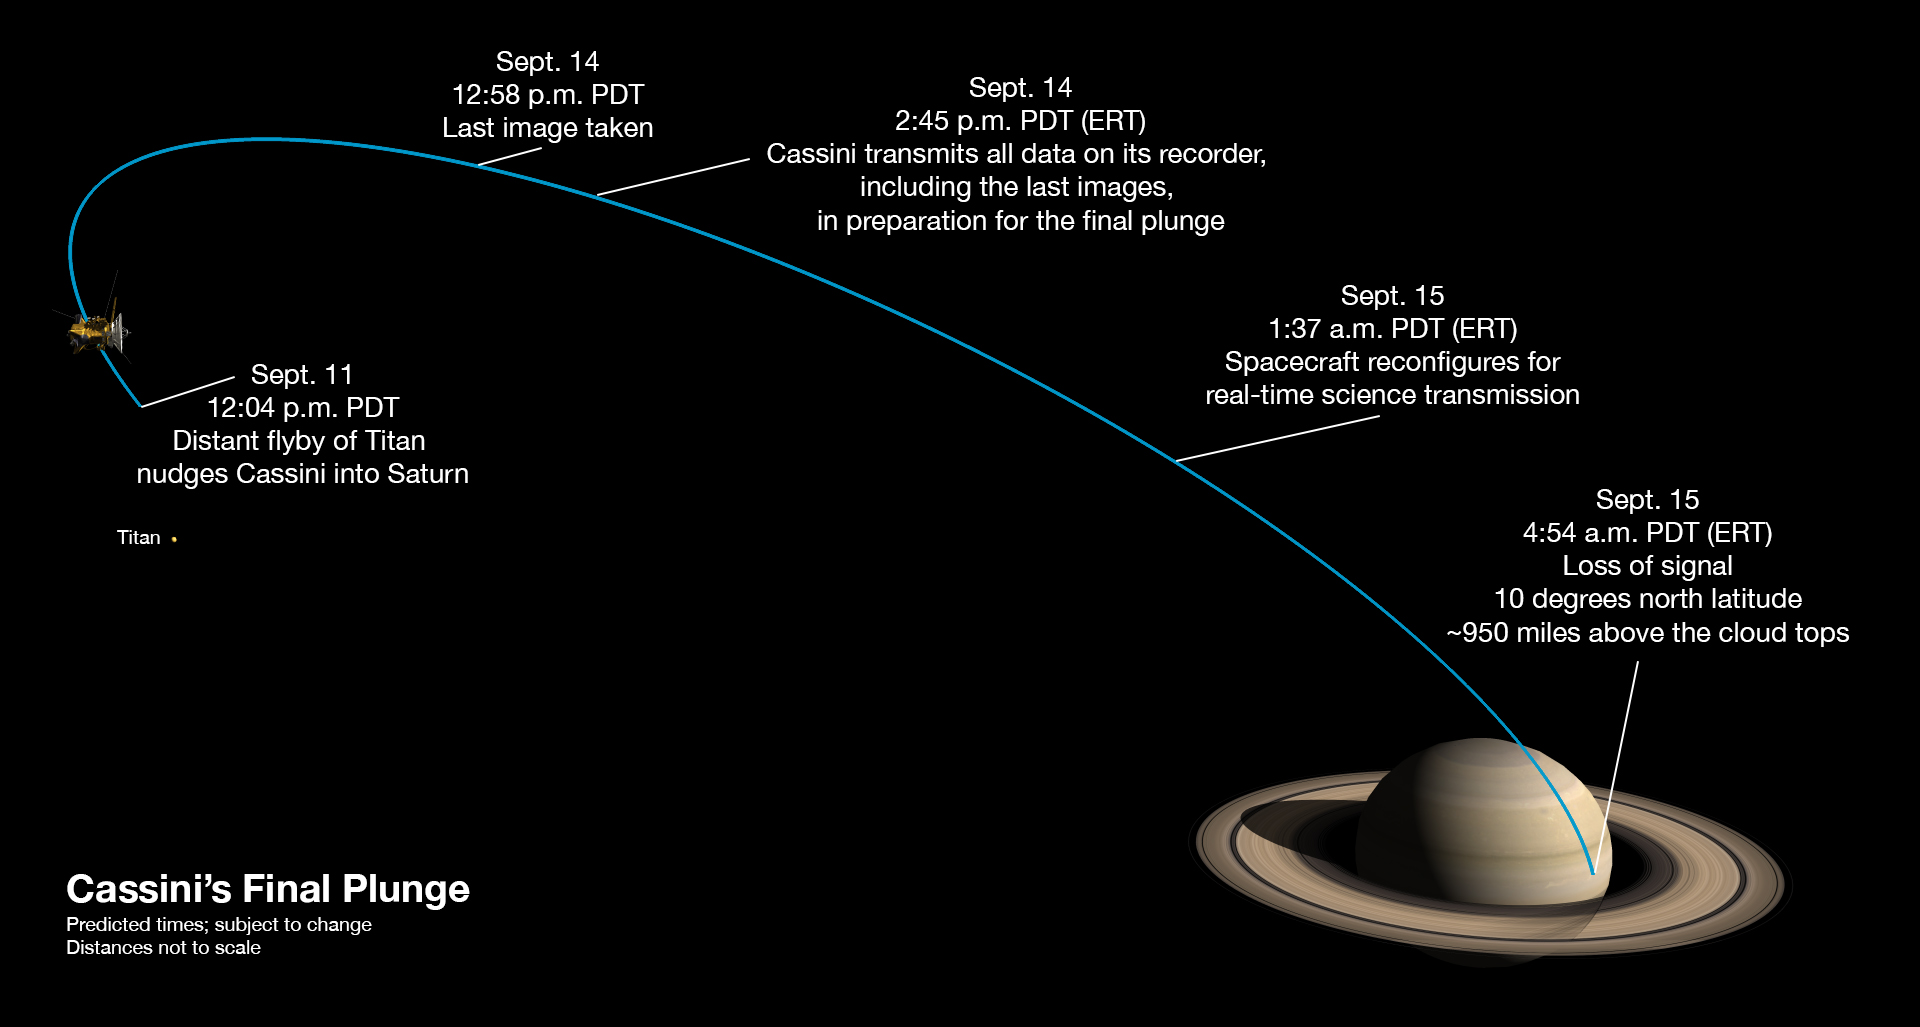 NASA image showing the trajectory of Cassini into Saturn